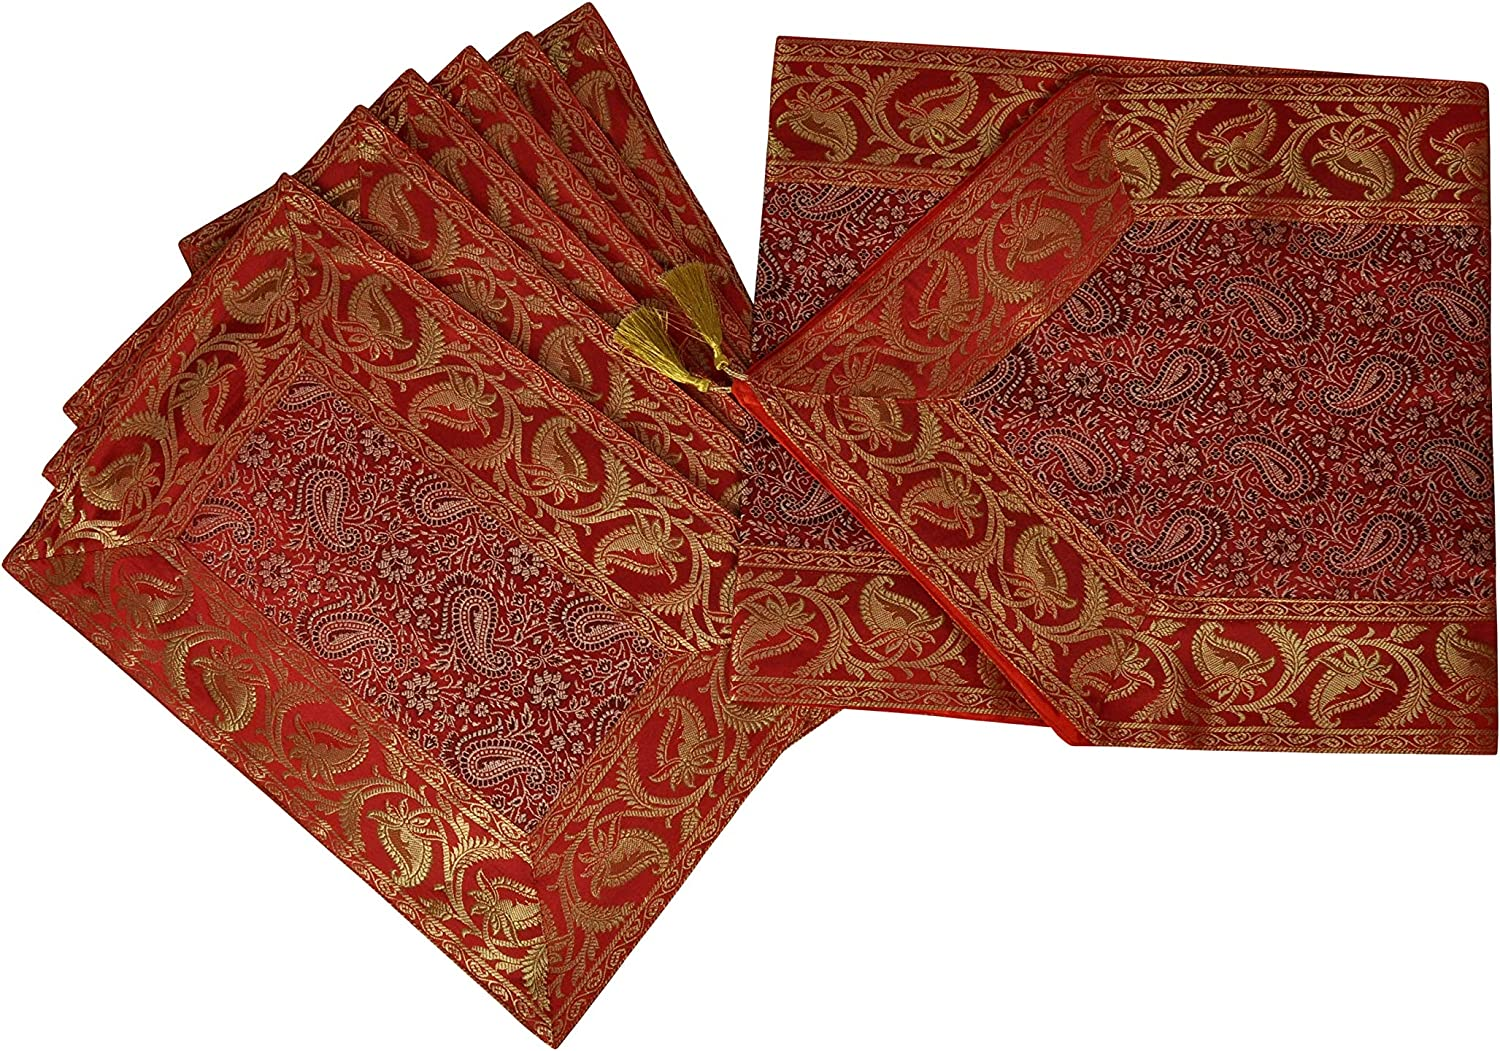 Lalhaveli Dining 2021new shipping free shipping sold out Table Decorative Red Silk Pla with Runner